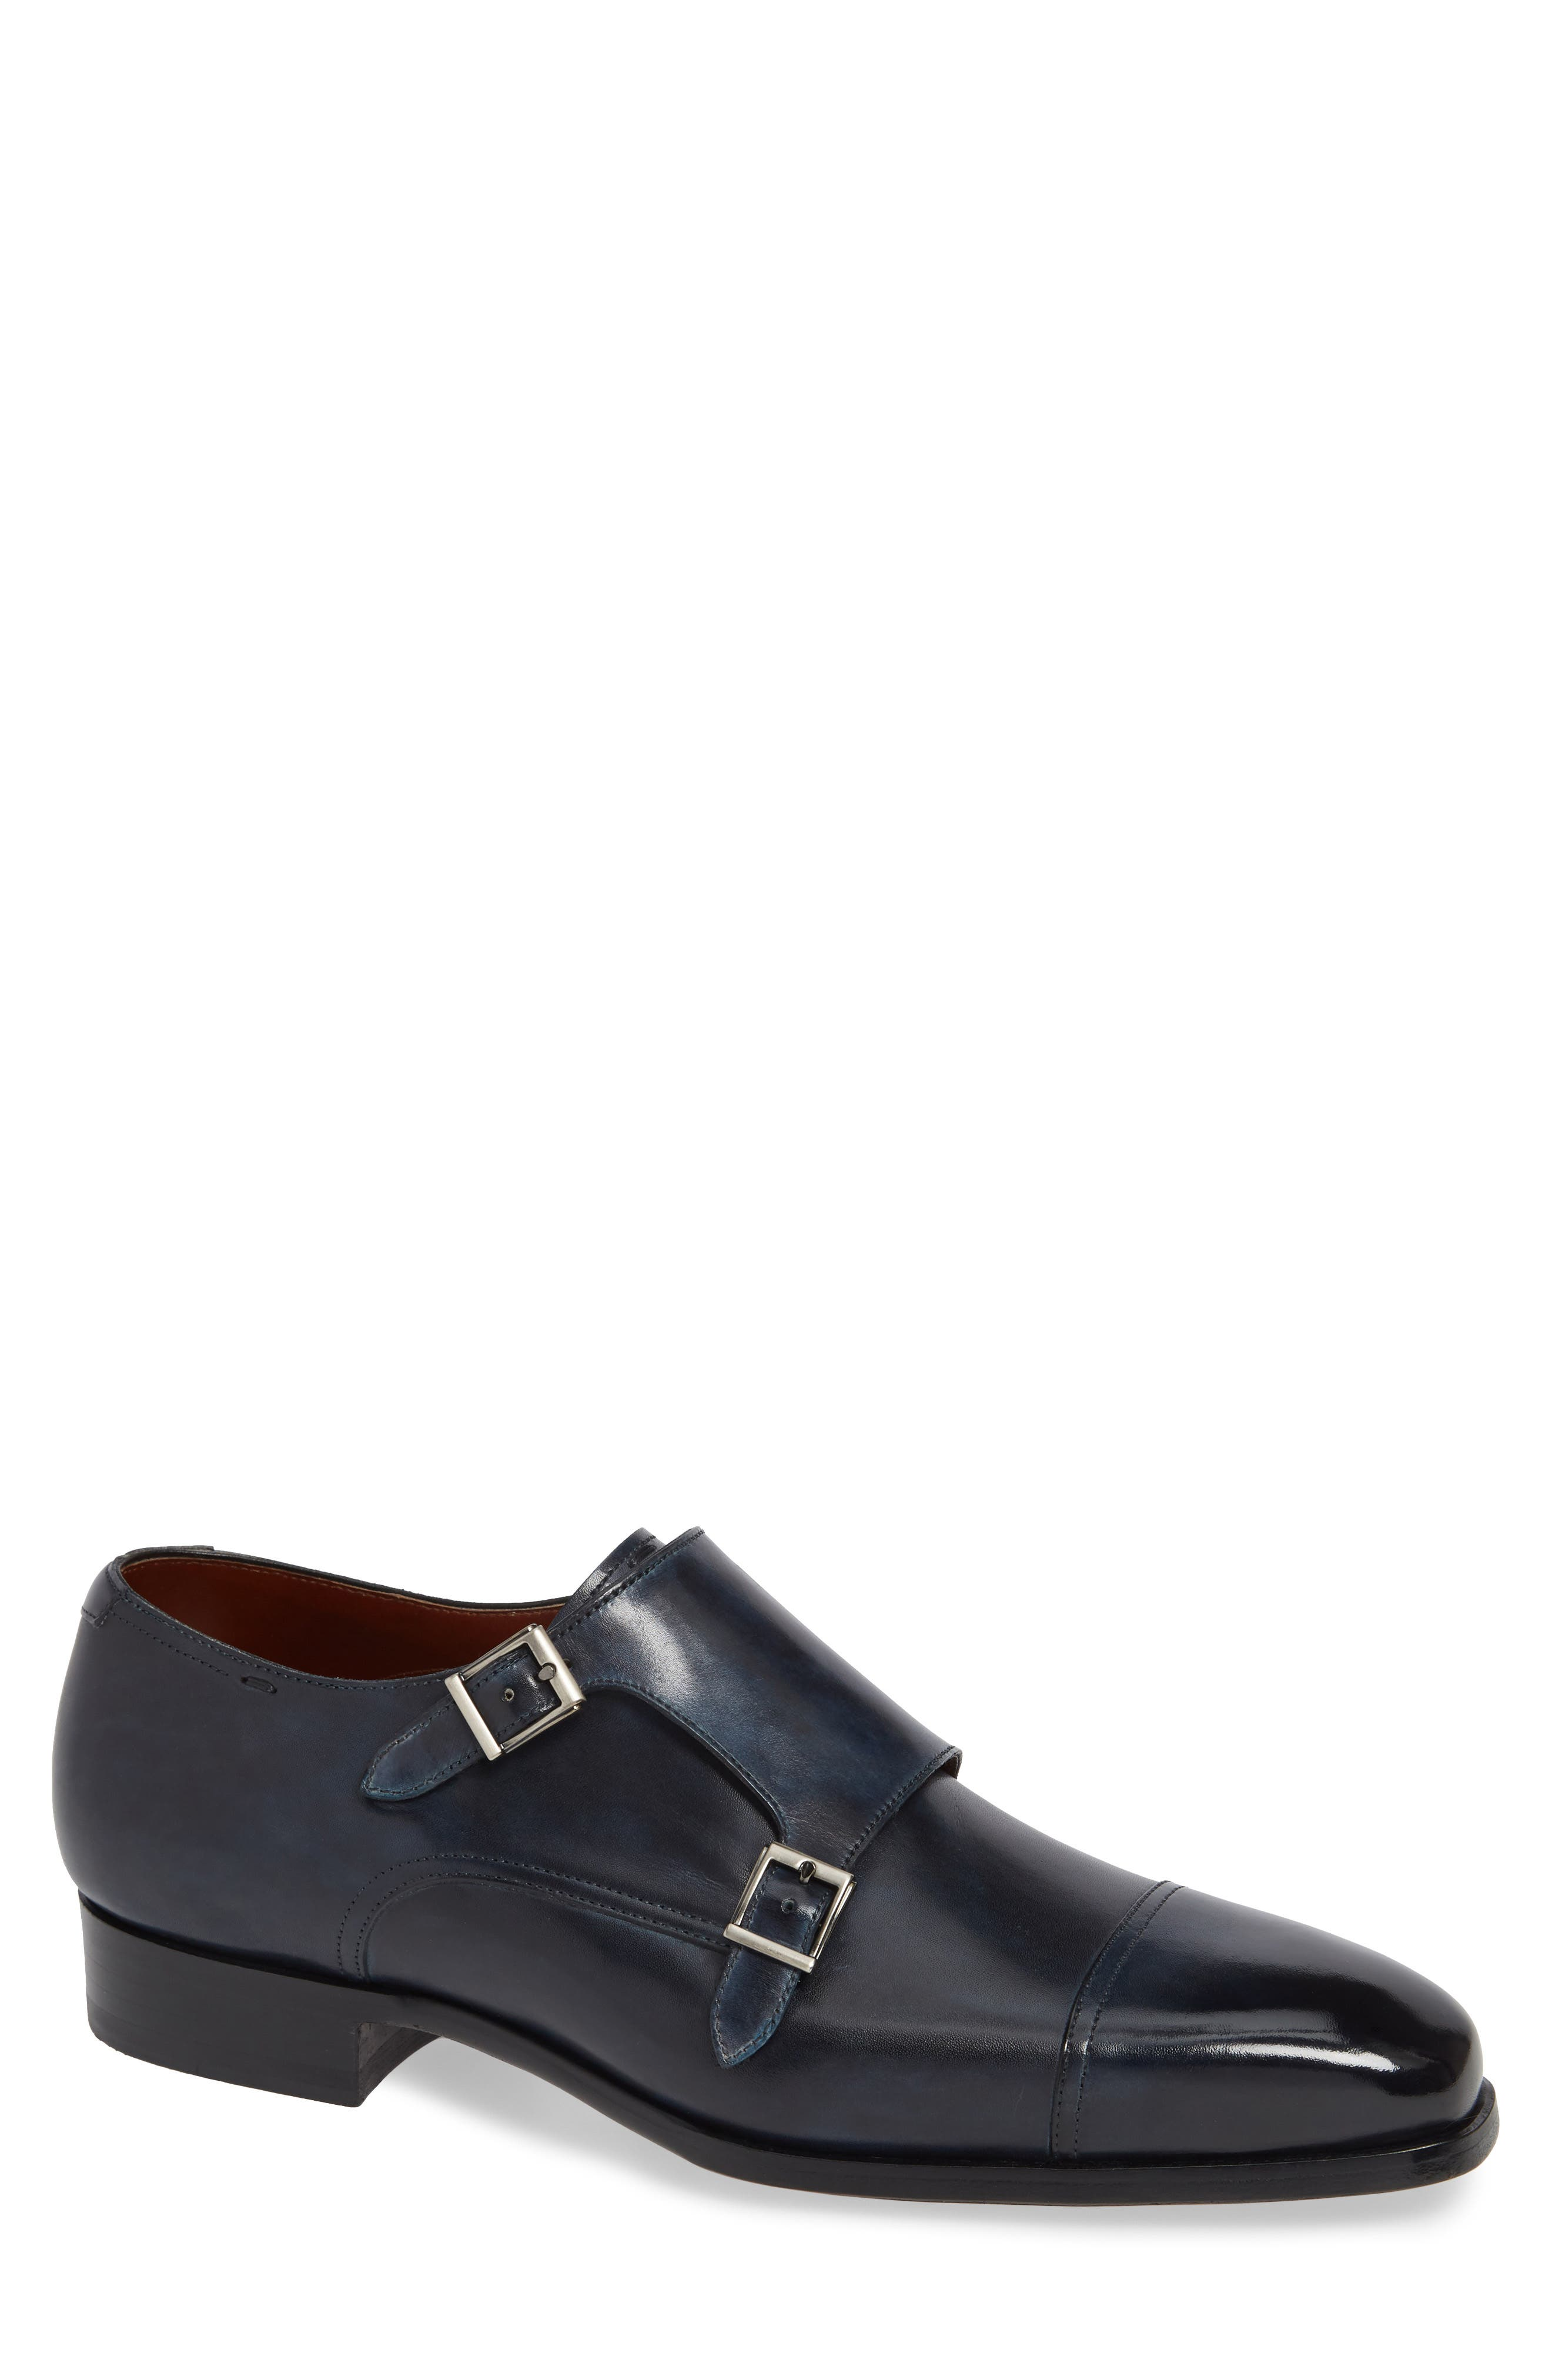 MAGNANNI Wooster Double Monk Strap Shoe, Main, color, NAVY LEATHER